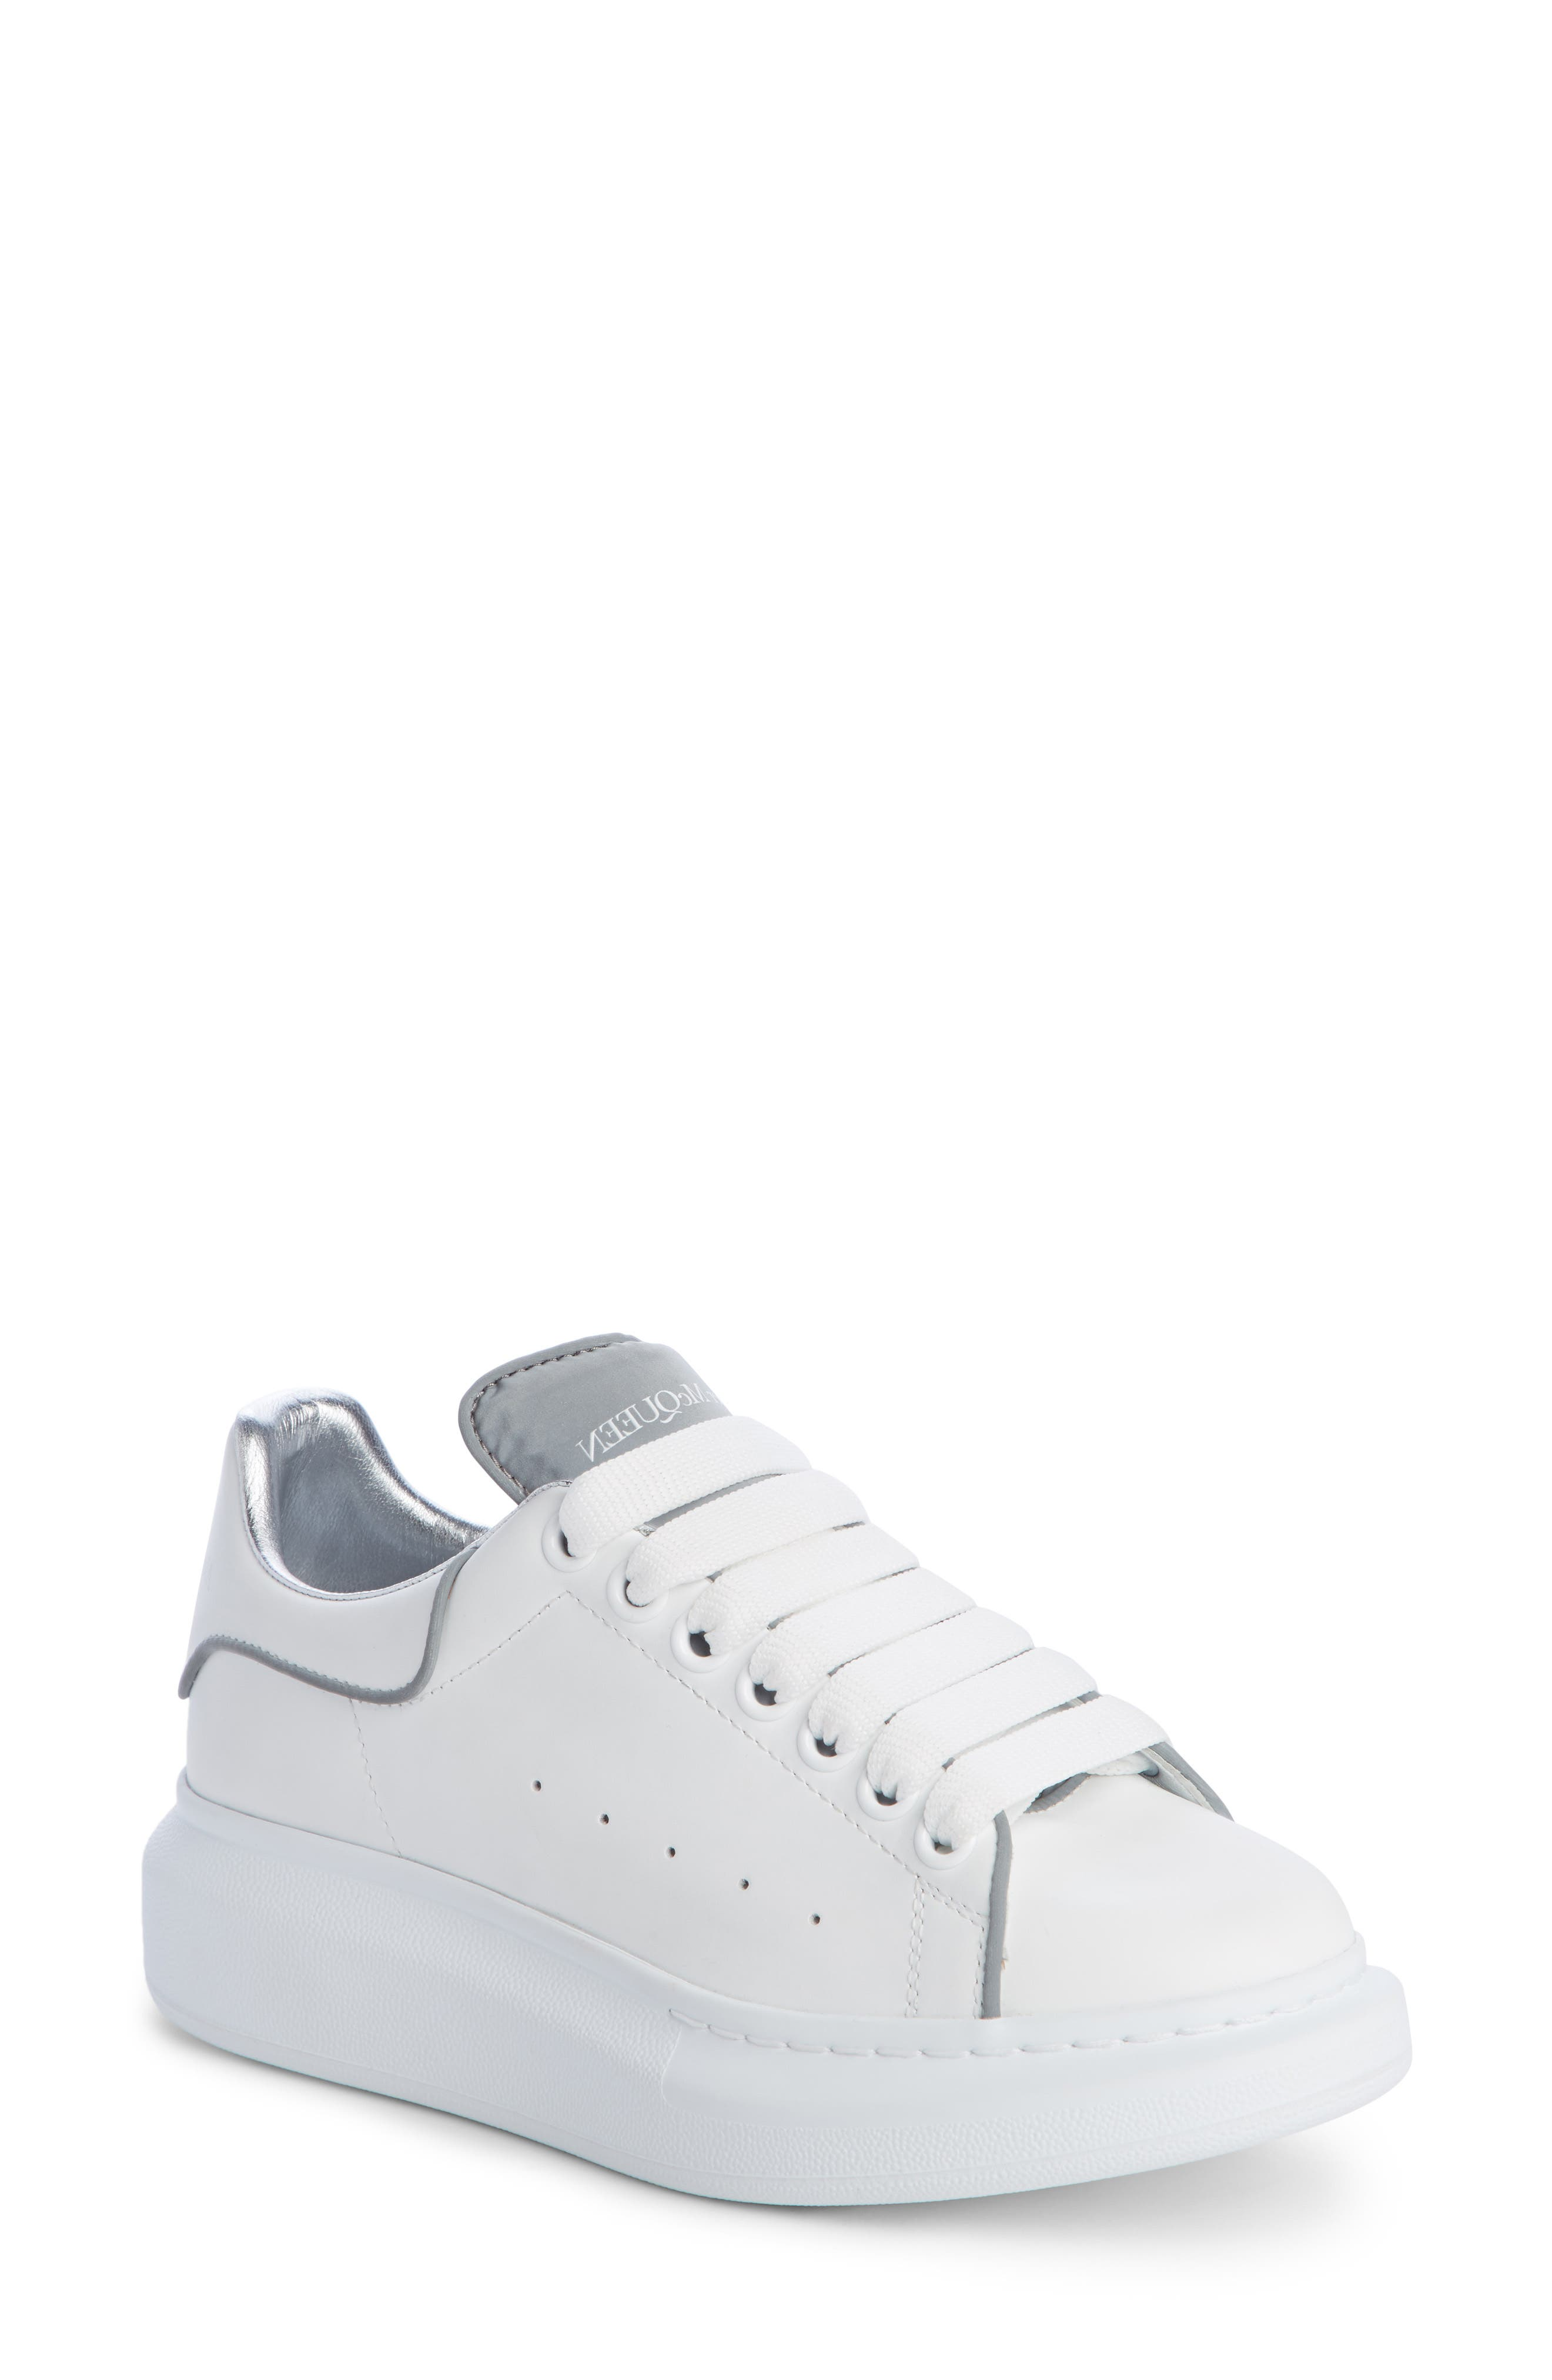 ALEXANDER MCQUEEN,                             Sneaker,                             Main thumbnail 1, color,                             WHITE/ SILVER PIPING